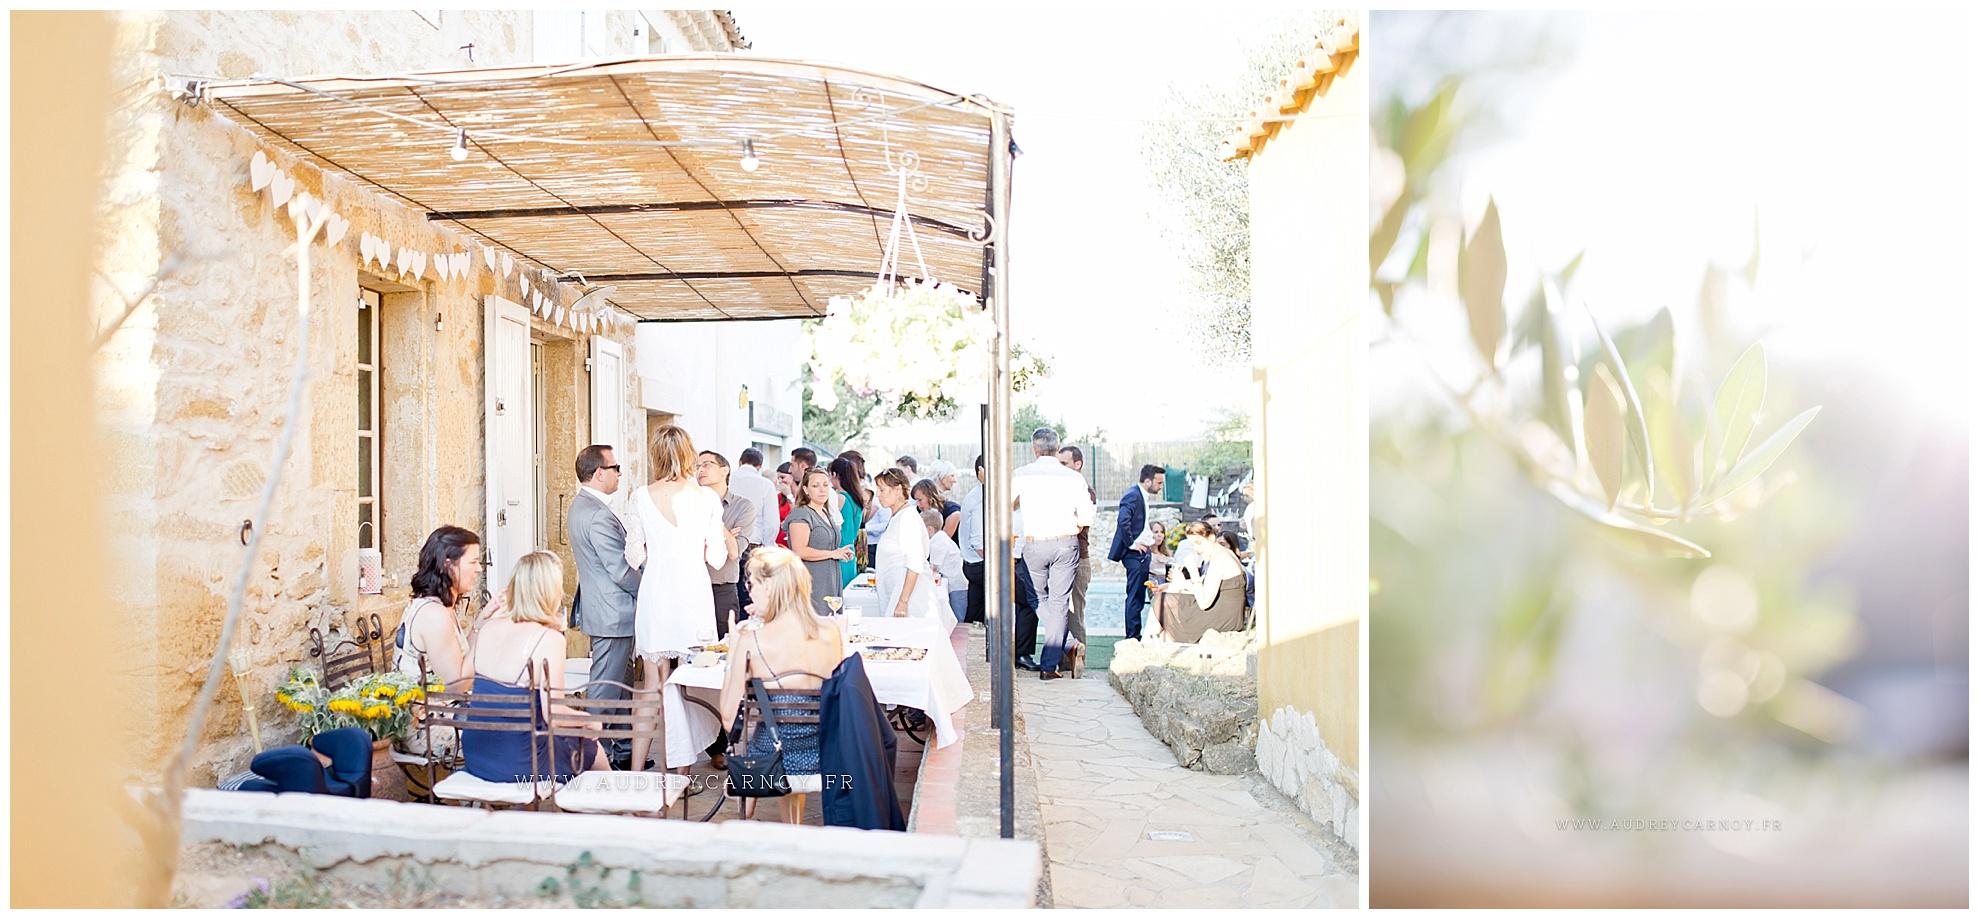 Mariage Pertuis | Laurence & Anthony 42